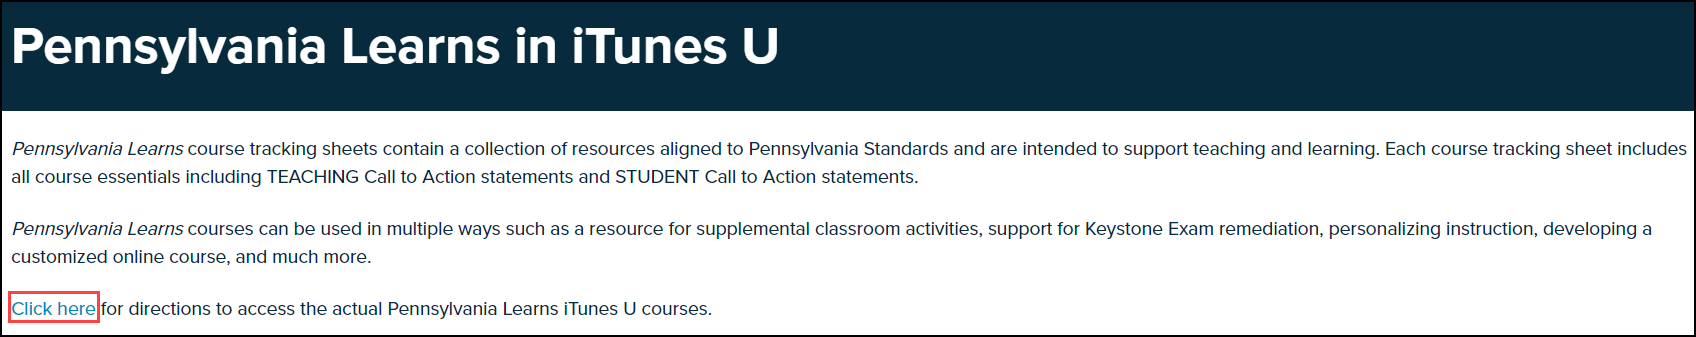 pennsylvania learns in I tunes U screen with click here button highlighted